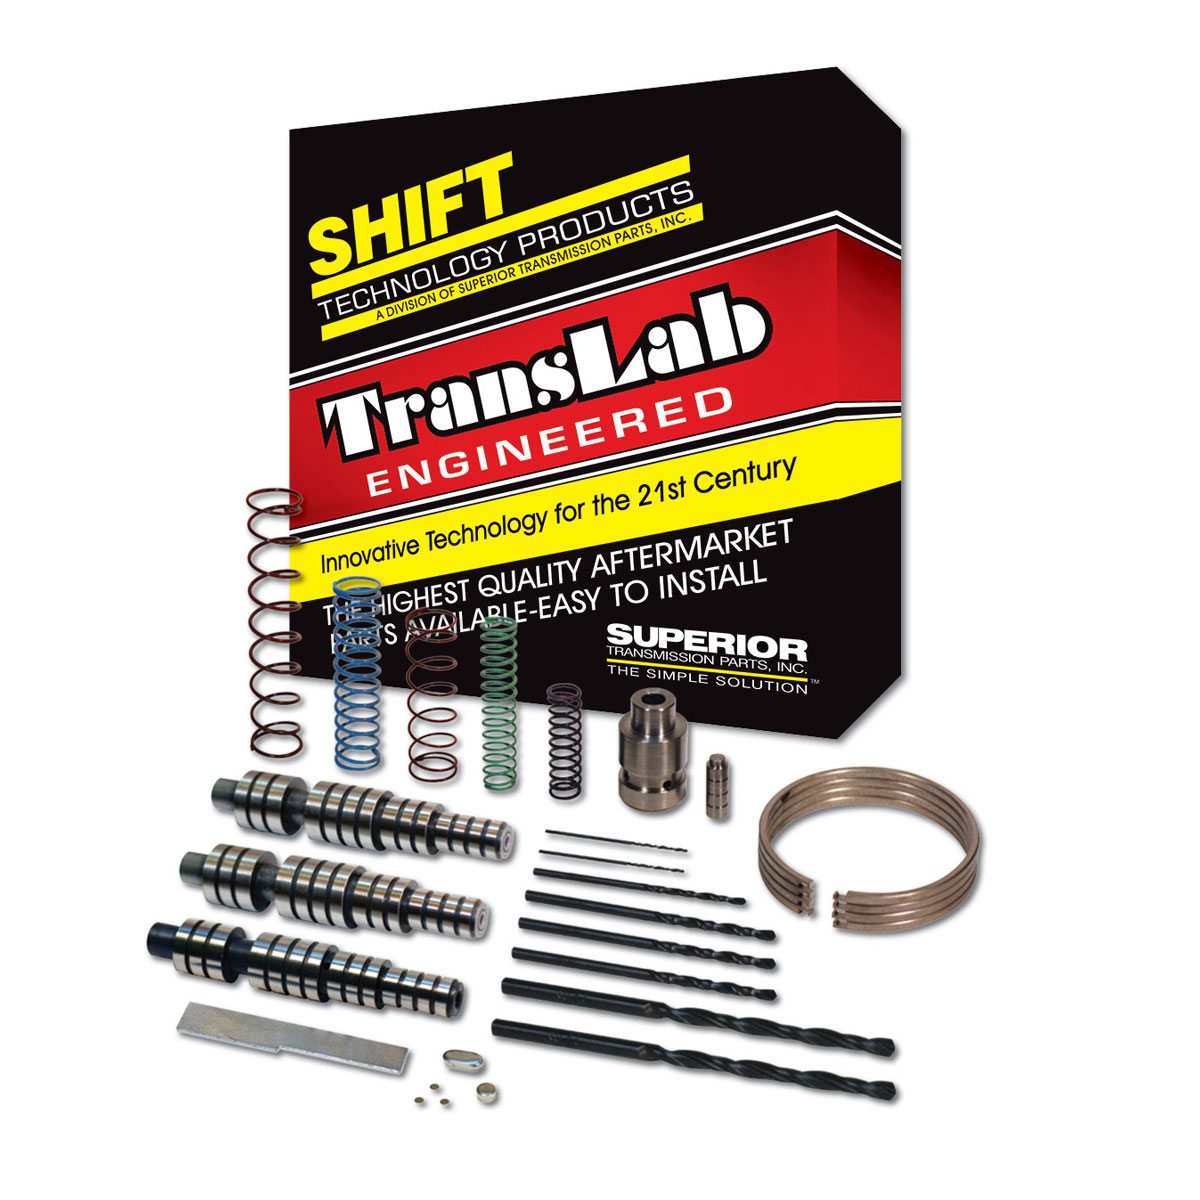 Superior Transmission Parts - The problem solvers of the